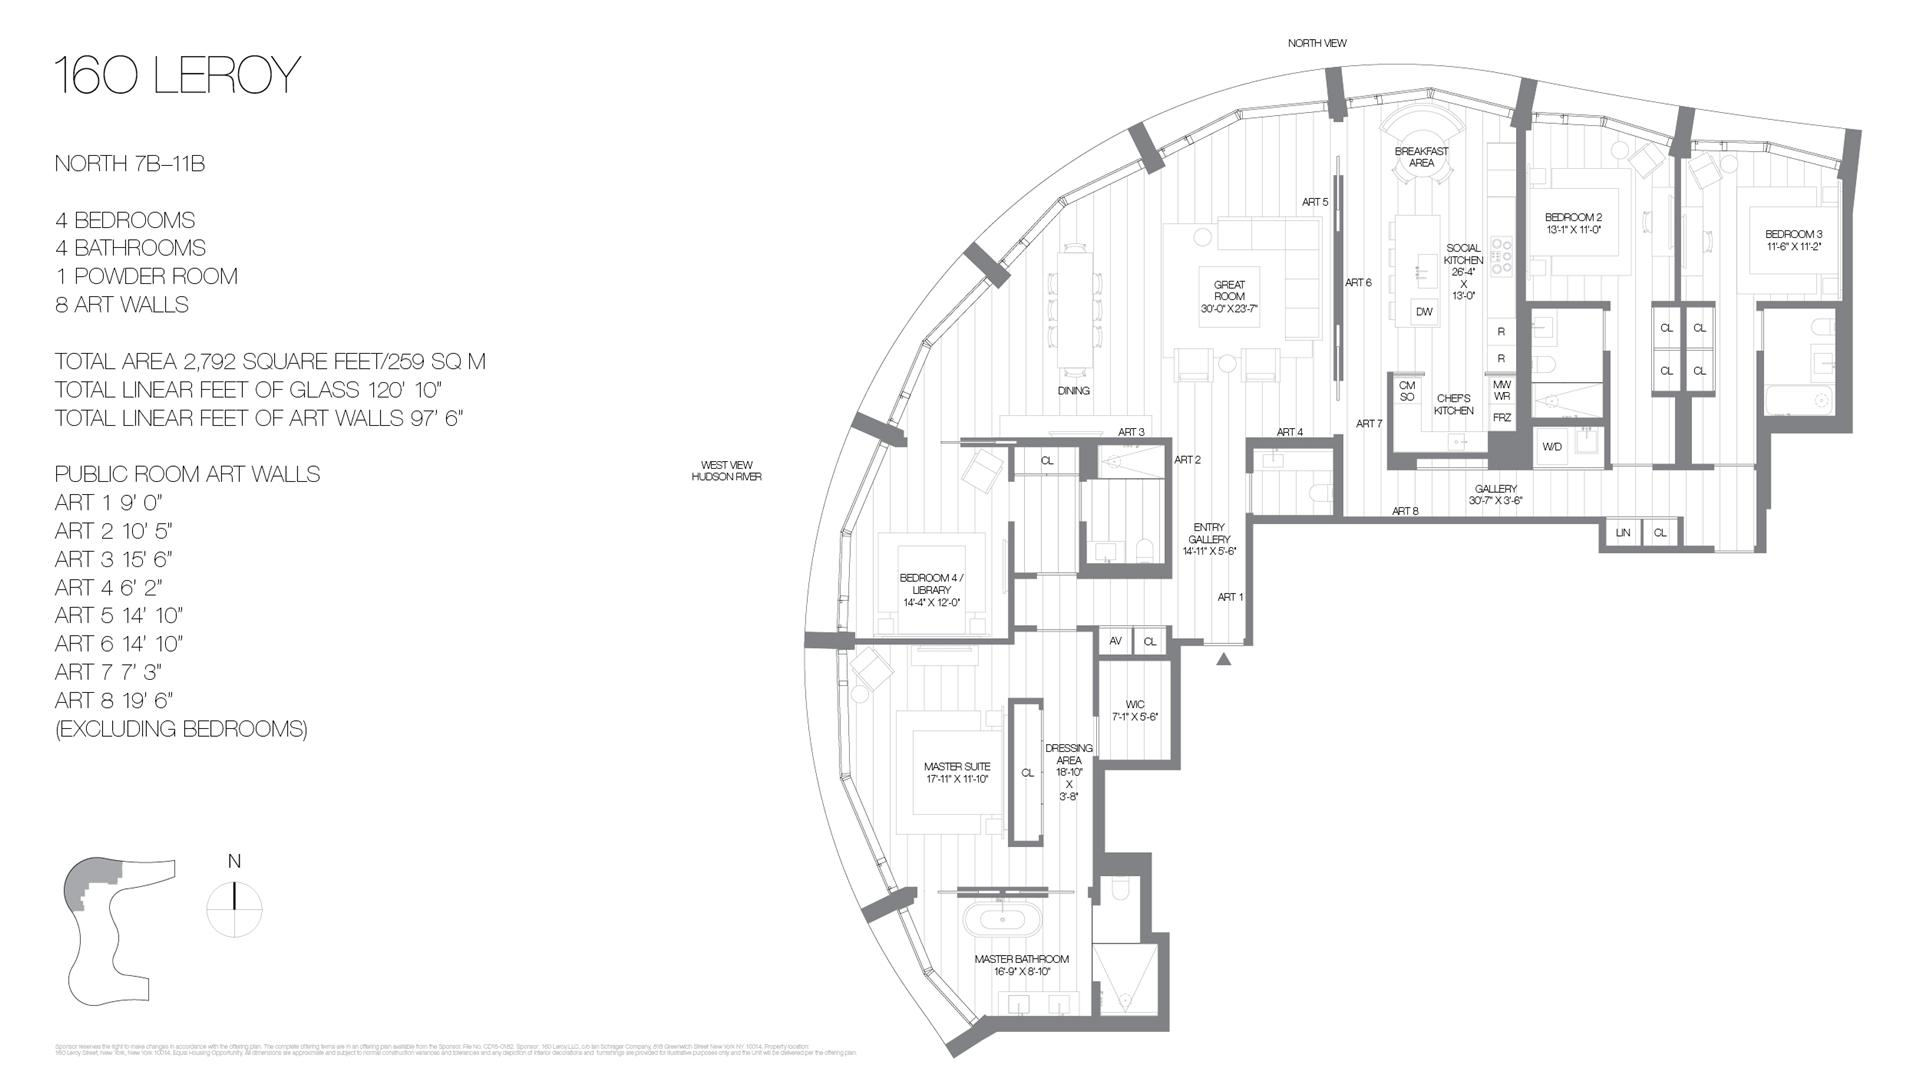 Floor plan of 160 Leroy St, NORTH9B - West Village - Meatpacking District, New York